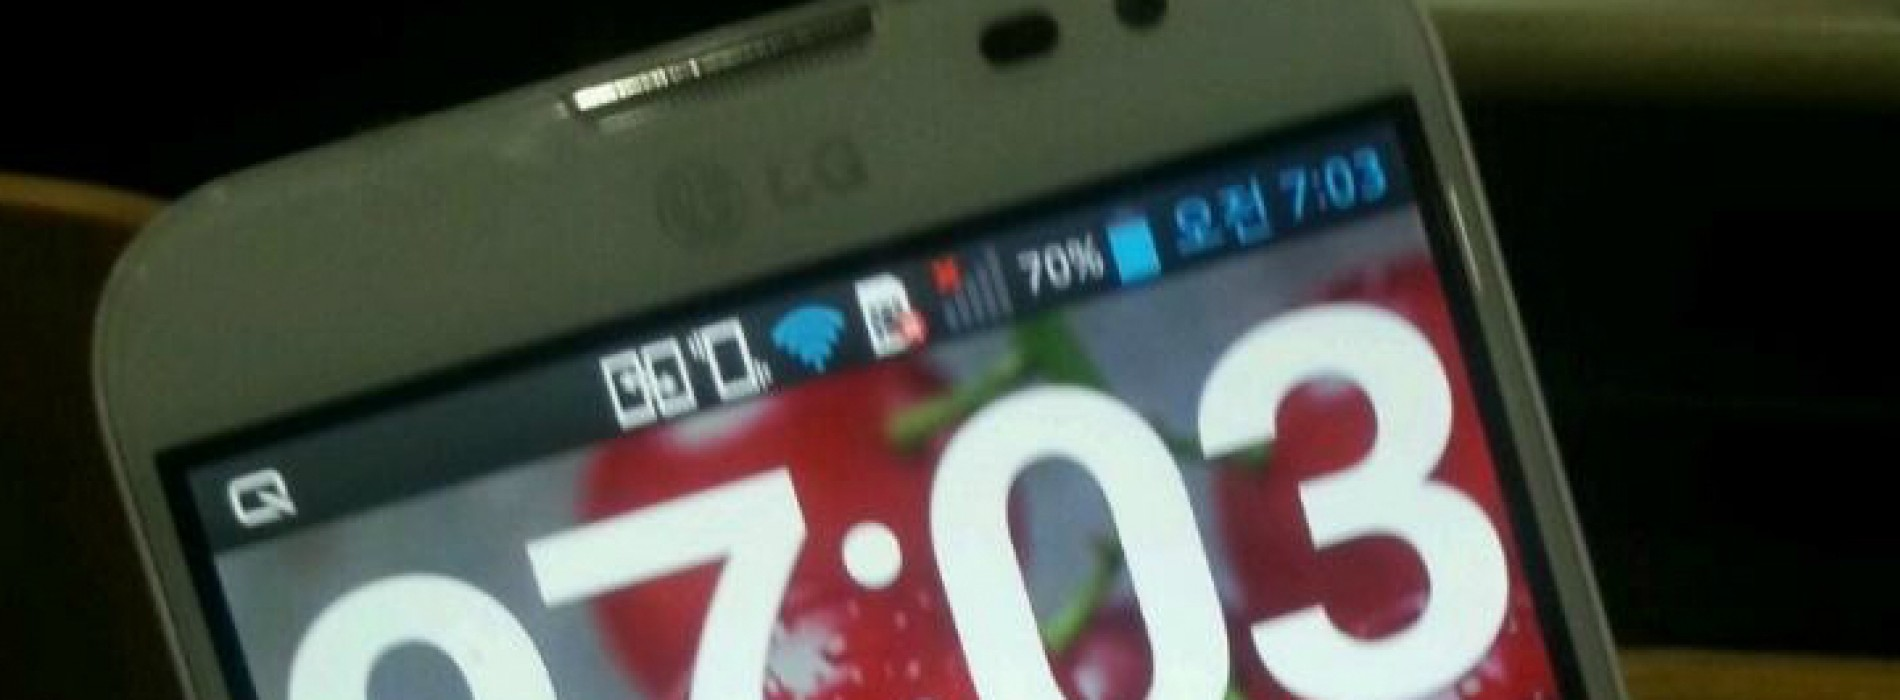 5.5-inch LG Optimus G Pro spotted